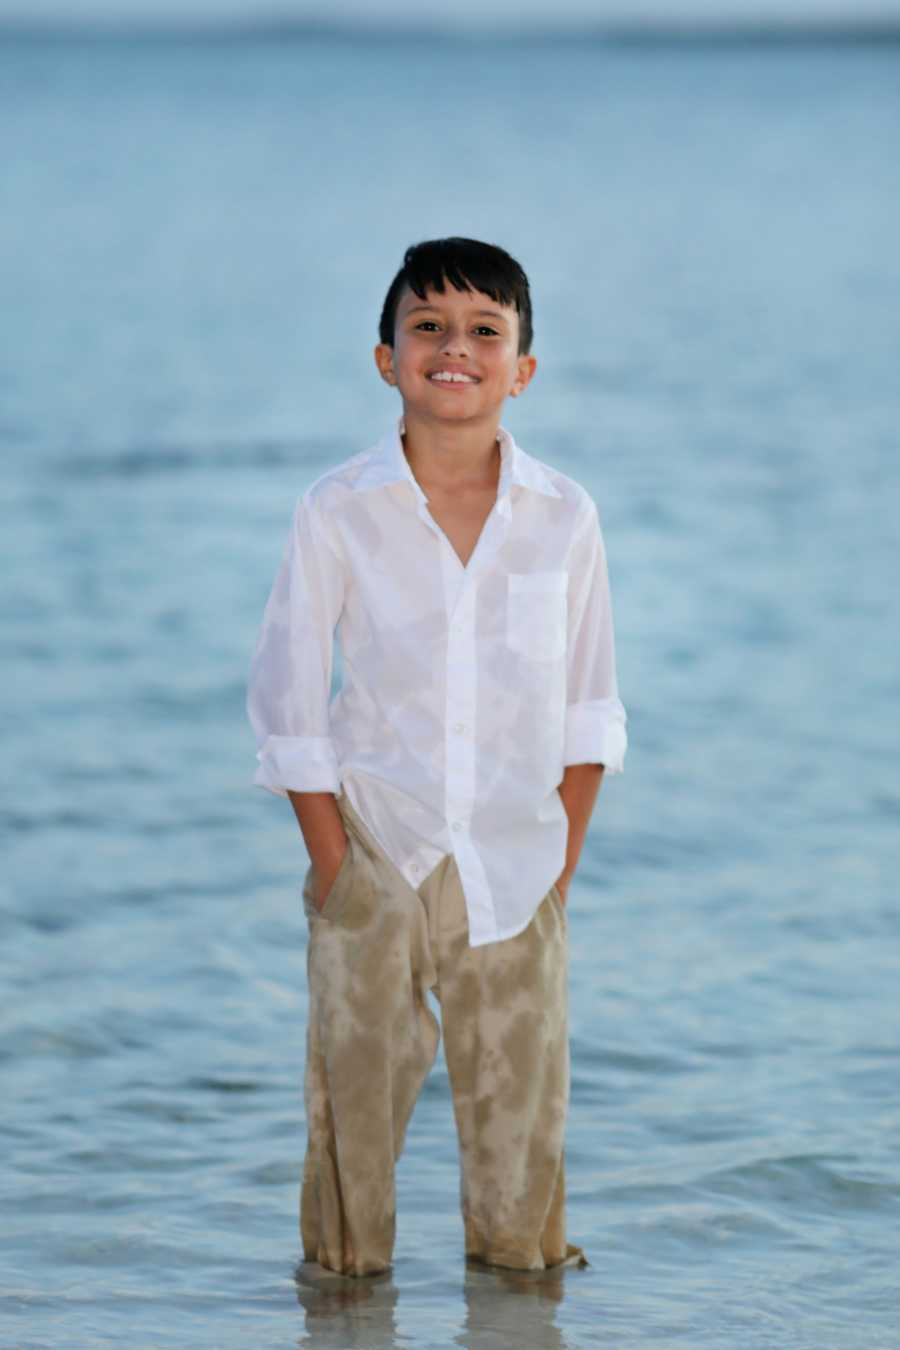 Young boy with epilepsy smiles on the beach during a family photoshoot